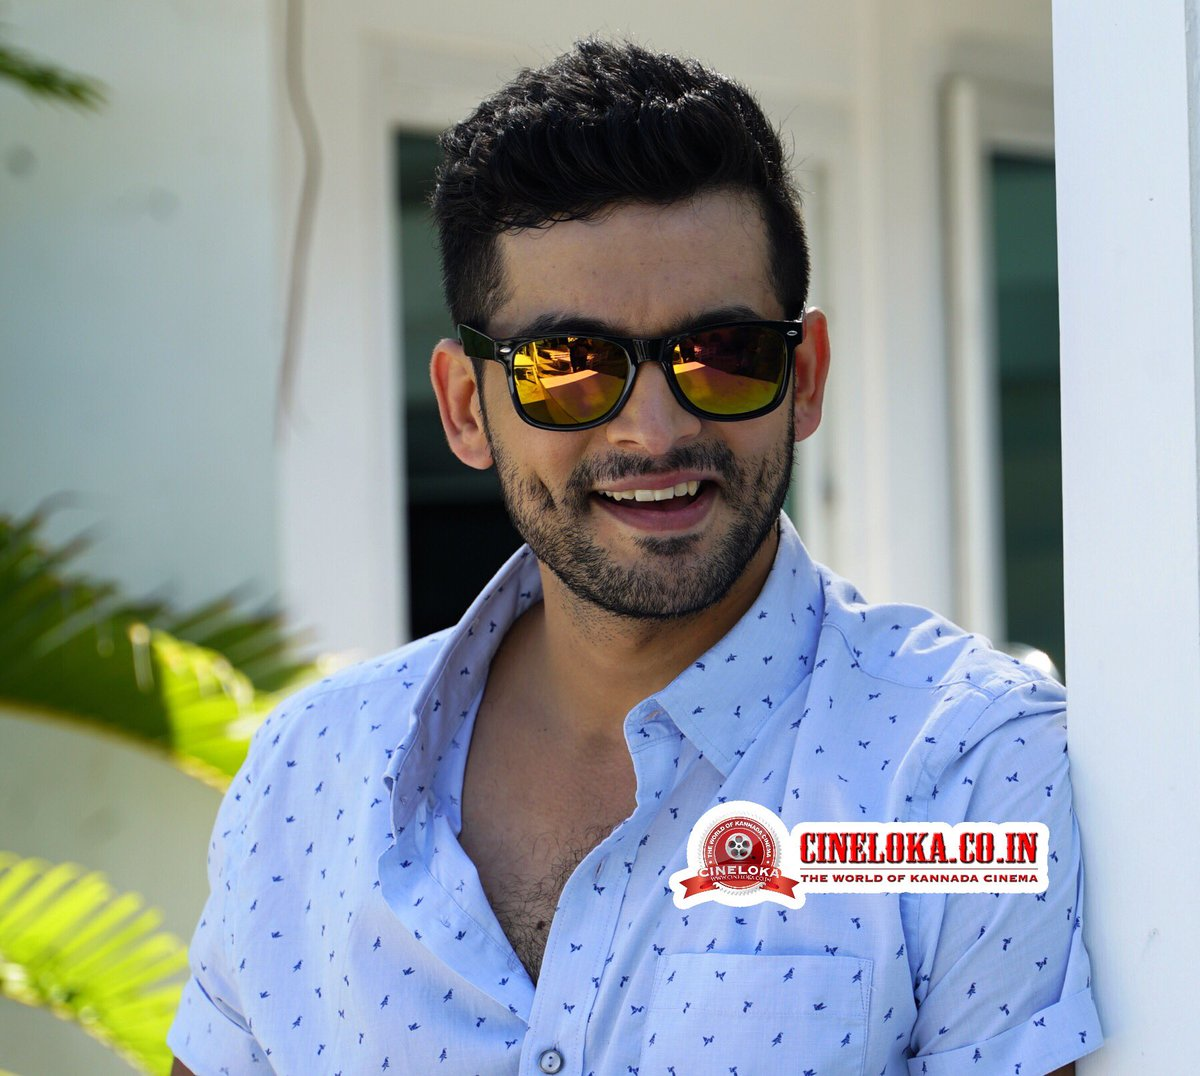 #DoodhPeda @diganthmanchale in #HappyNewYear. Music by @Raghu_Dixit has been received well :)  @pannagabharana<br>http://pic.twitter.com/joP2vf7mmu